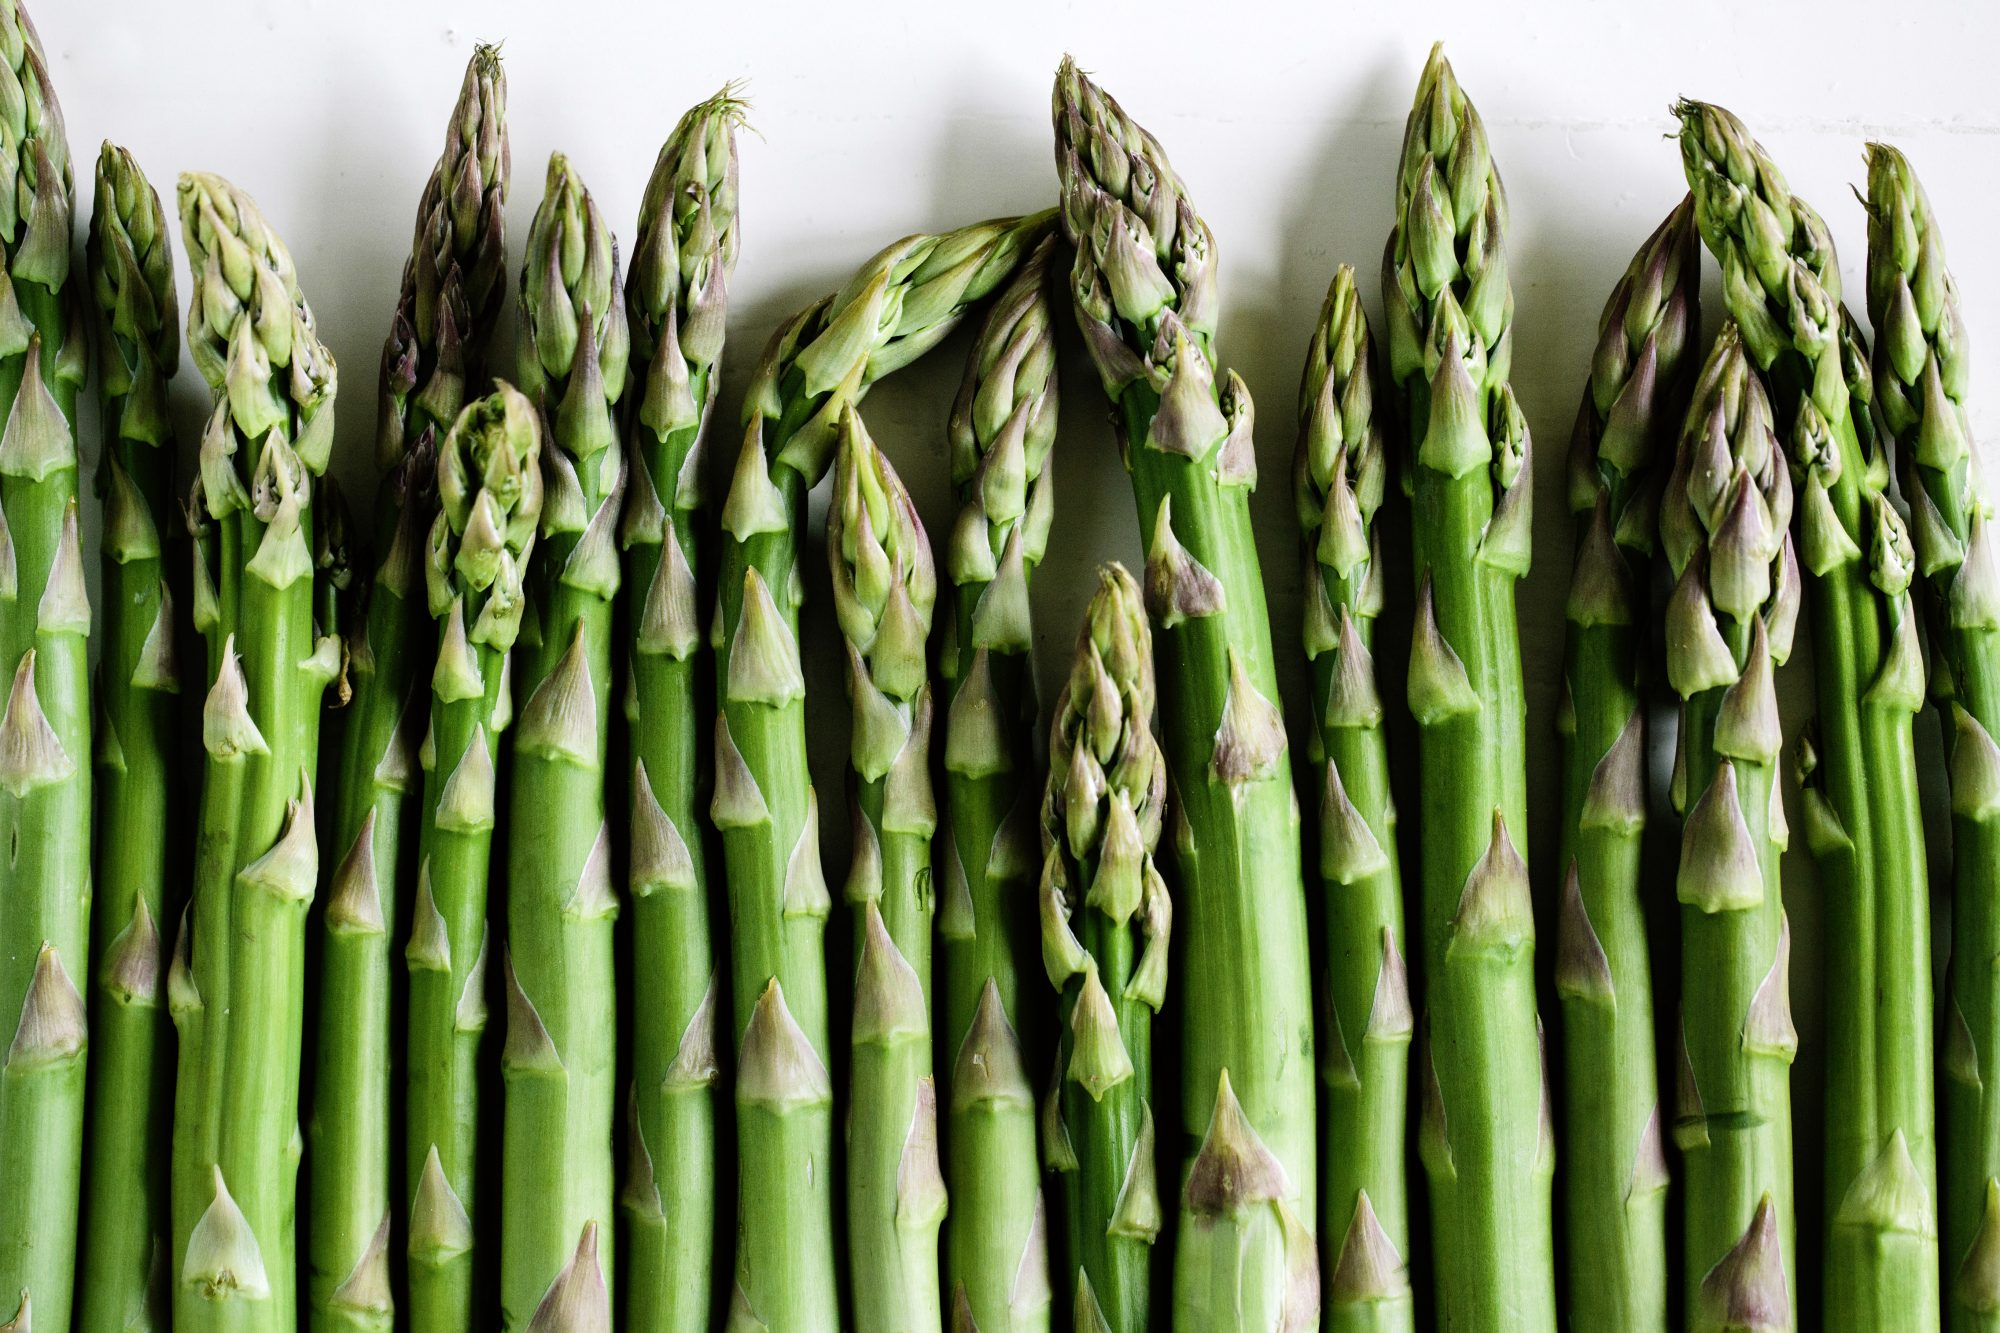 Asparagus in a Row